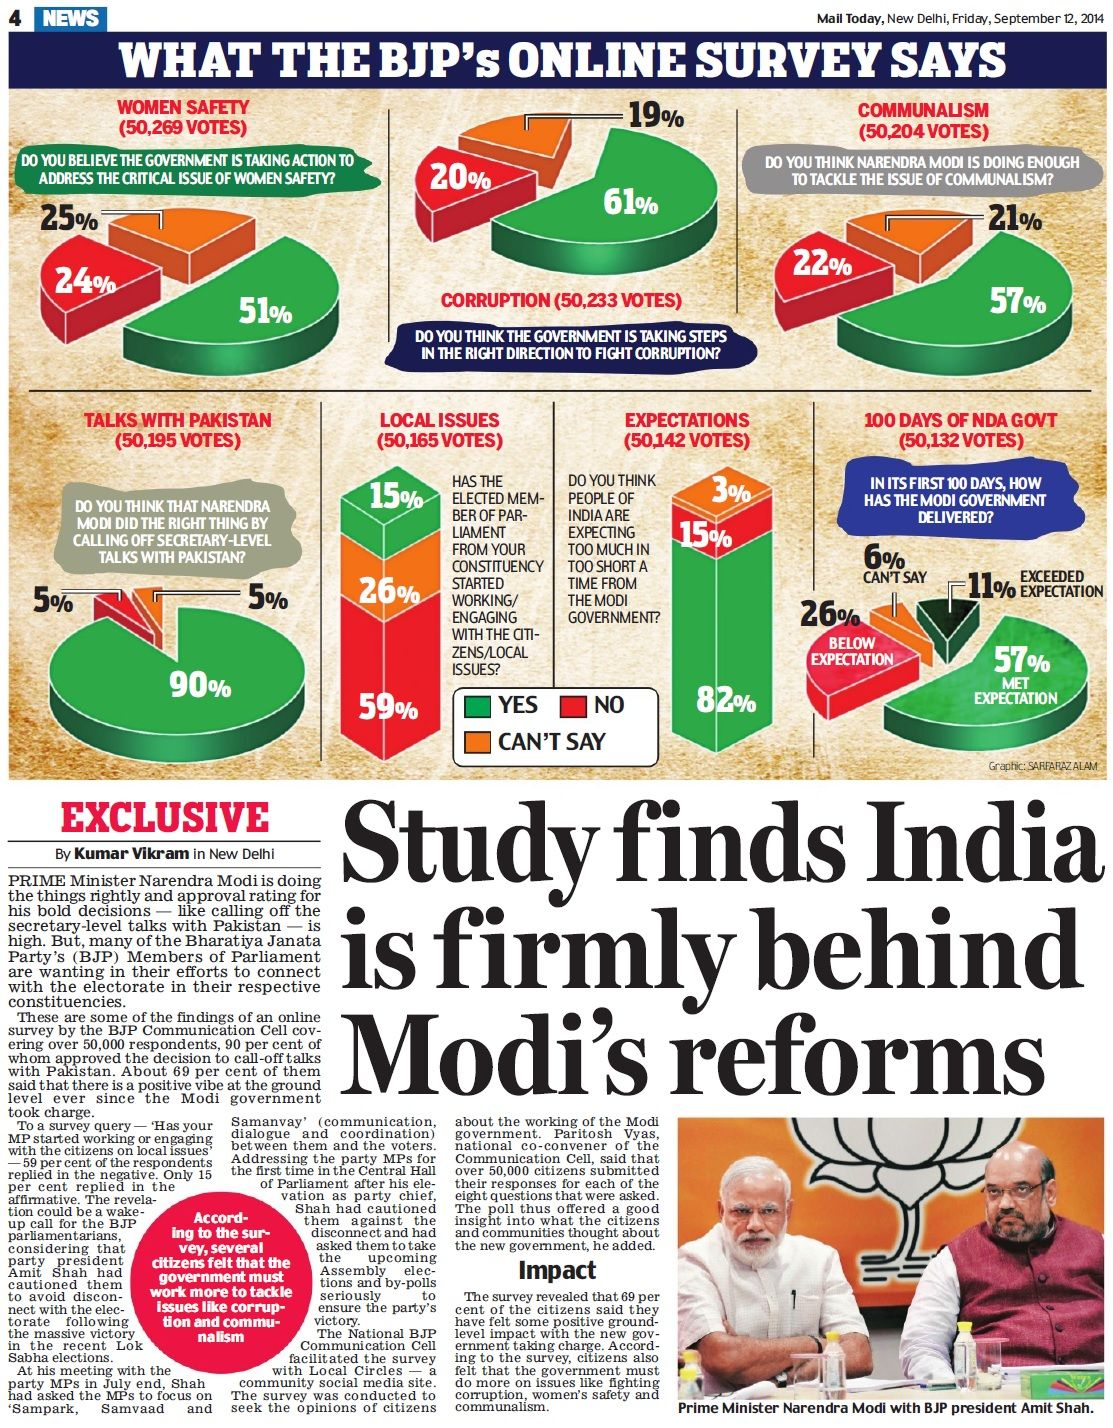 100_days_of_Modi_Government_-_Mail_Today_and_India_Today___20140912022142___.jpg